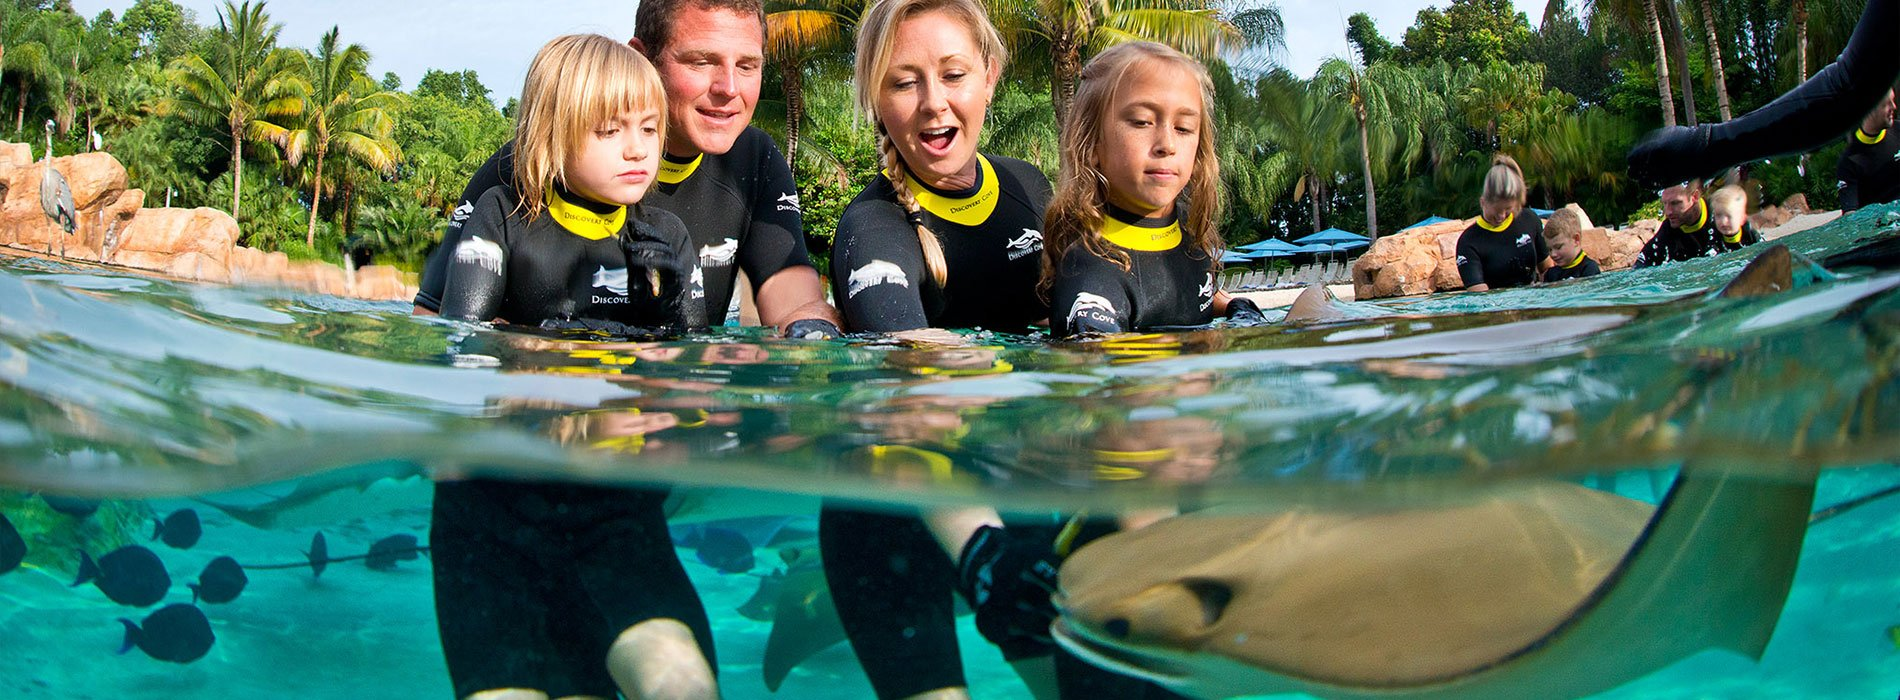 Feed rays and thousands of tropical fish at Discovery Cove.